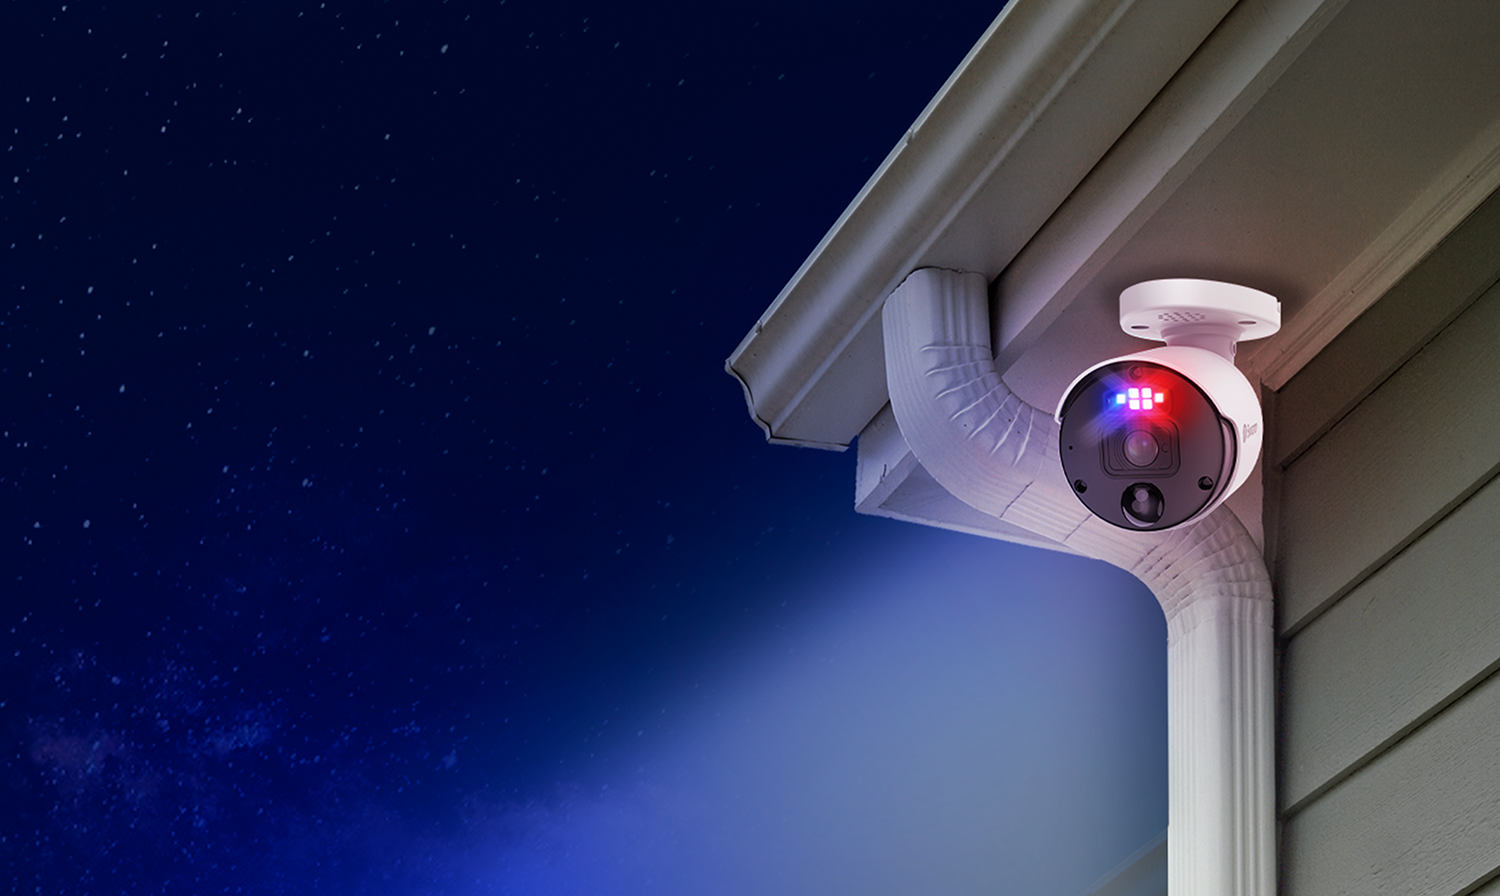 Swann Security announces a new 4K NVR security camera system